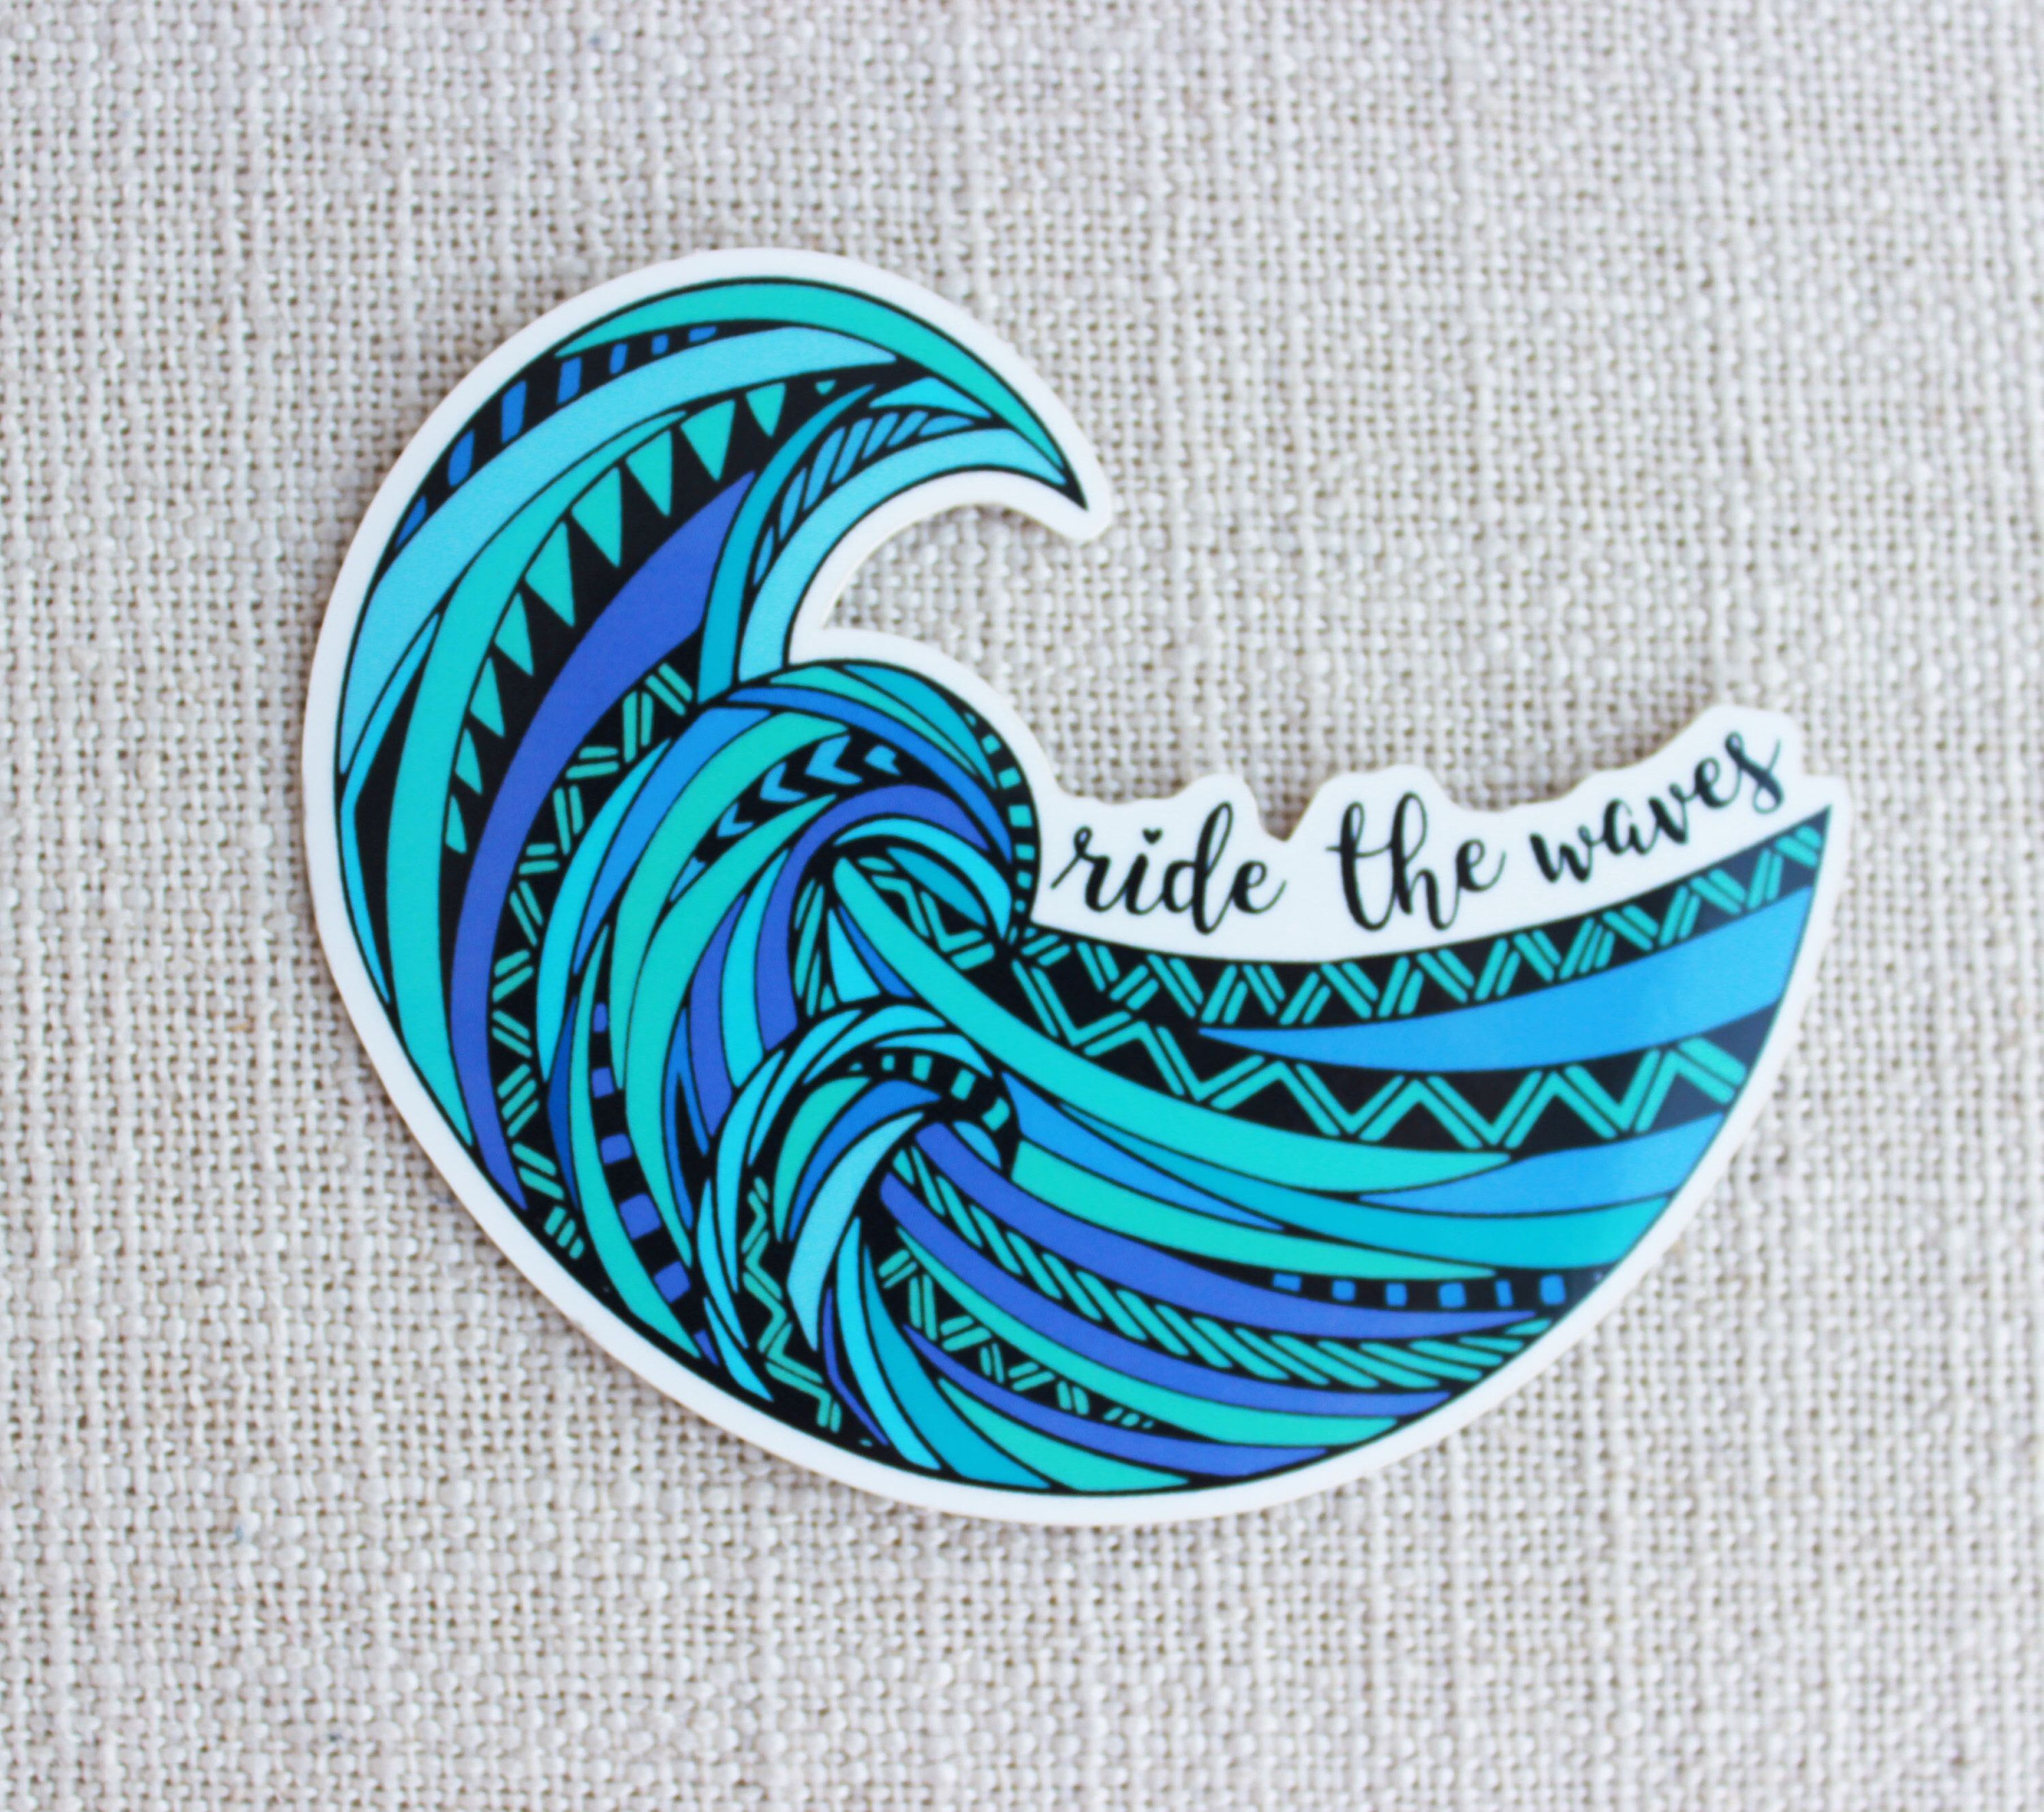 Ride The Waves Sticker Surfing Water Baby Gift Idea Etsy Surf Stickers Phone Stickers Iphone Stickers [ 2659 x 3000 Pixel ]